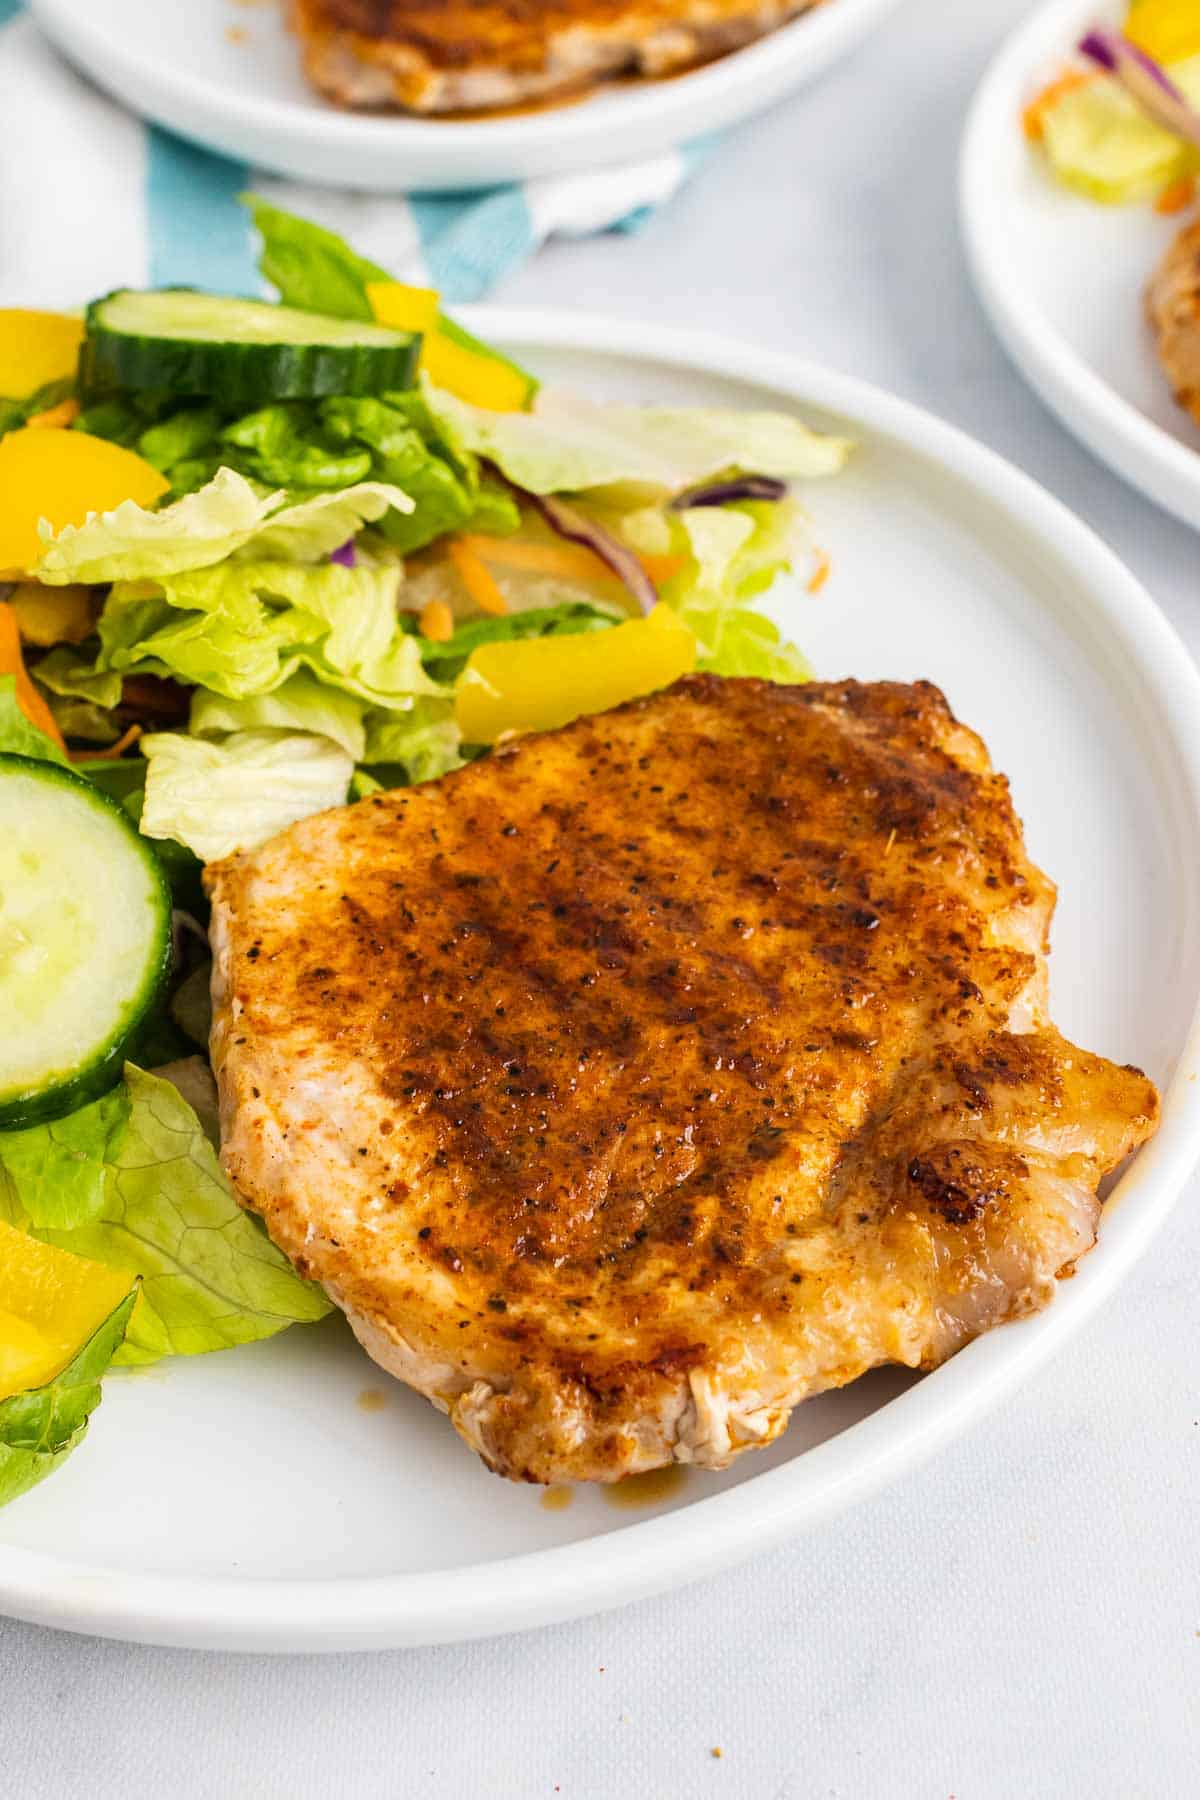 Spice-Rubbed Pork Chop on white plate with salad